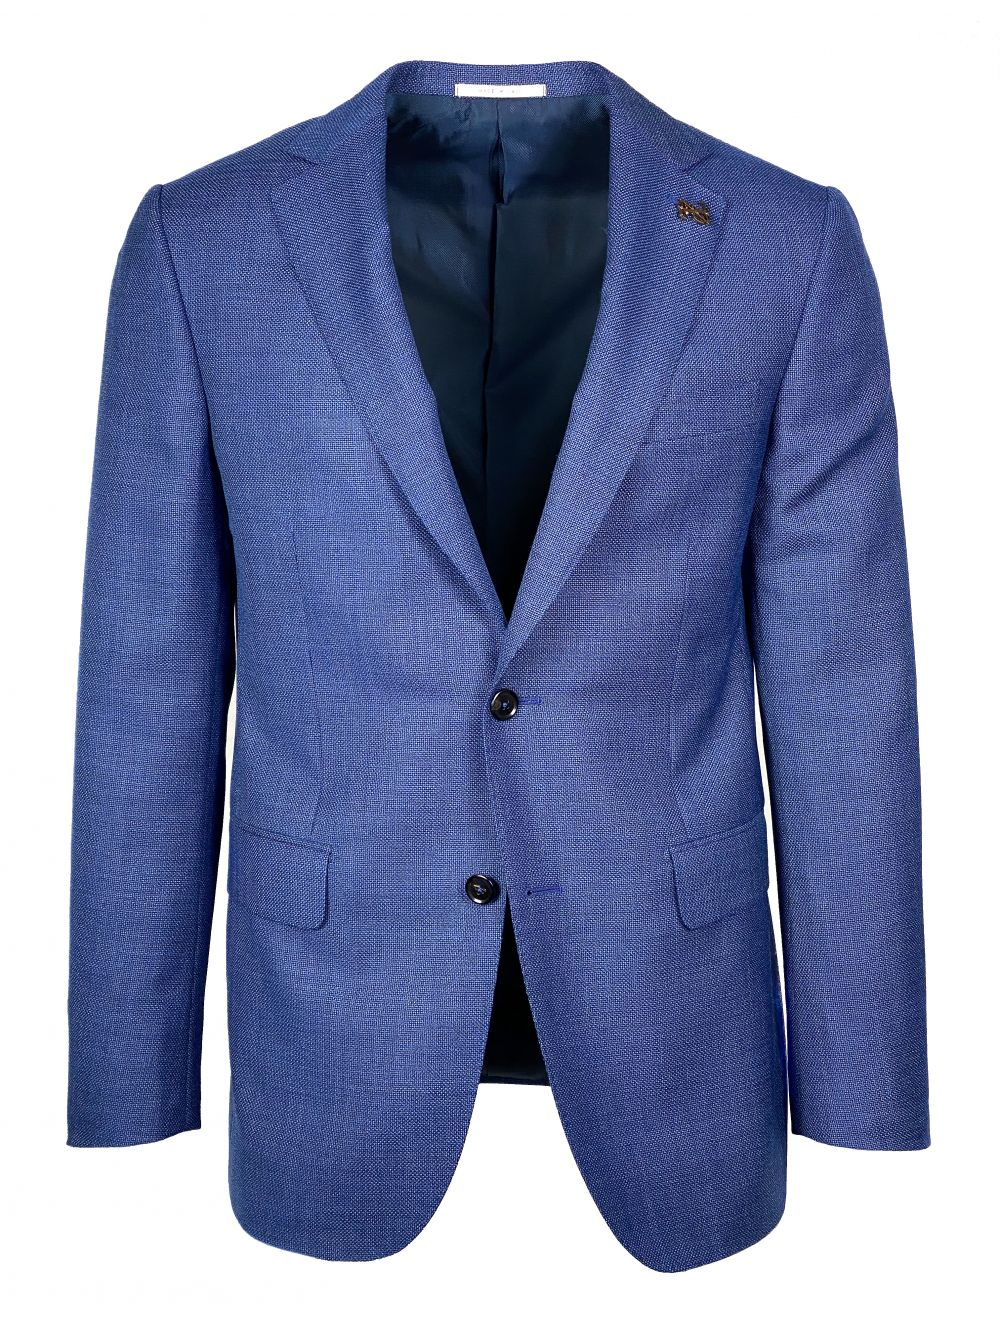 Pal Zileri Jacket - Blue